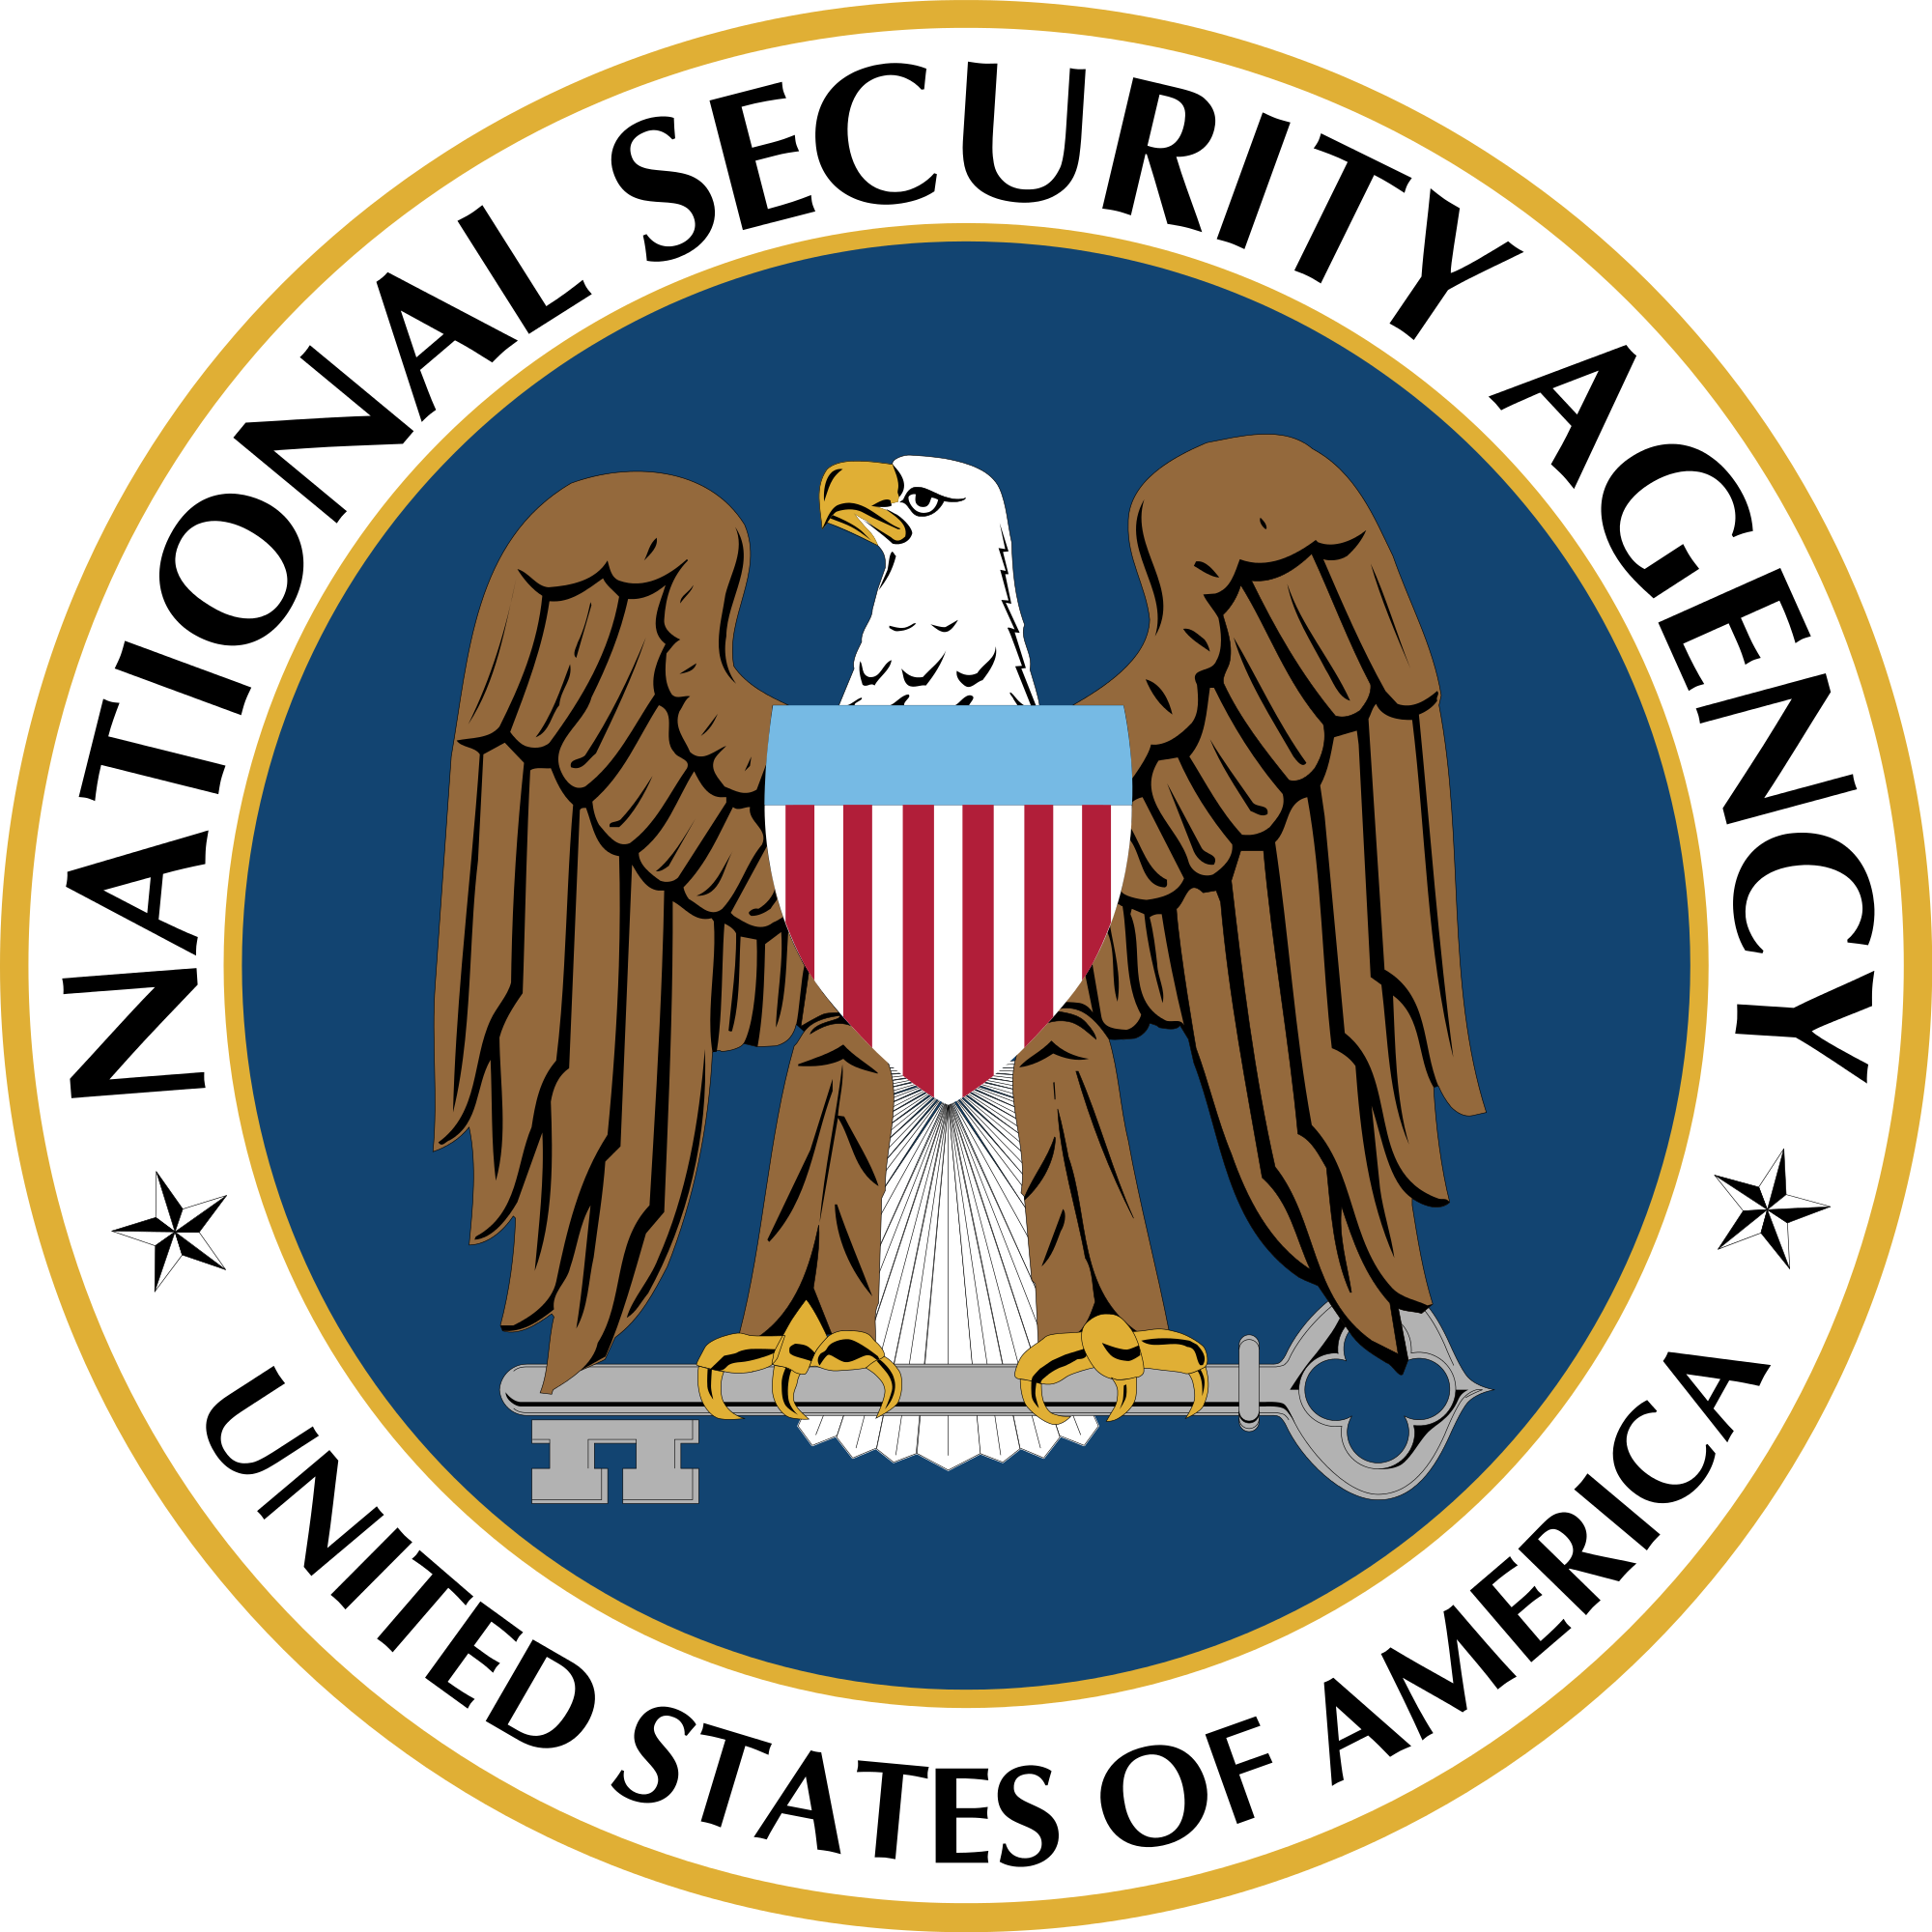 United States of America National Security Agency